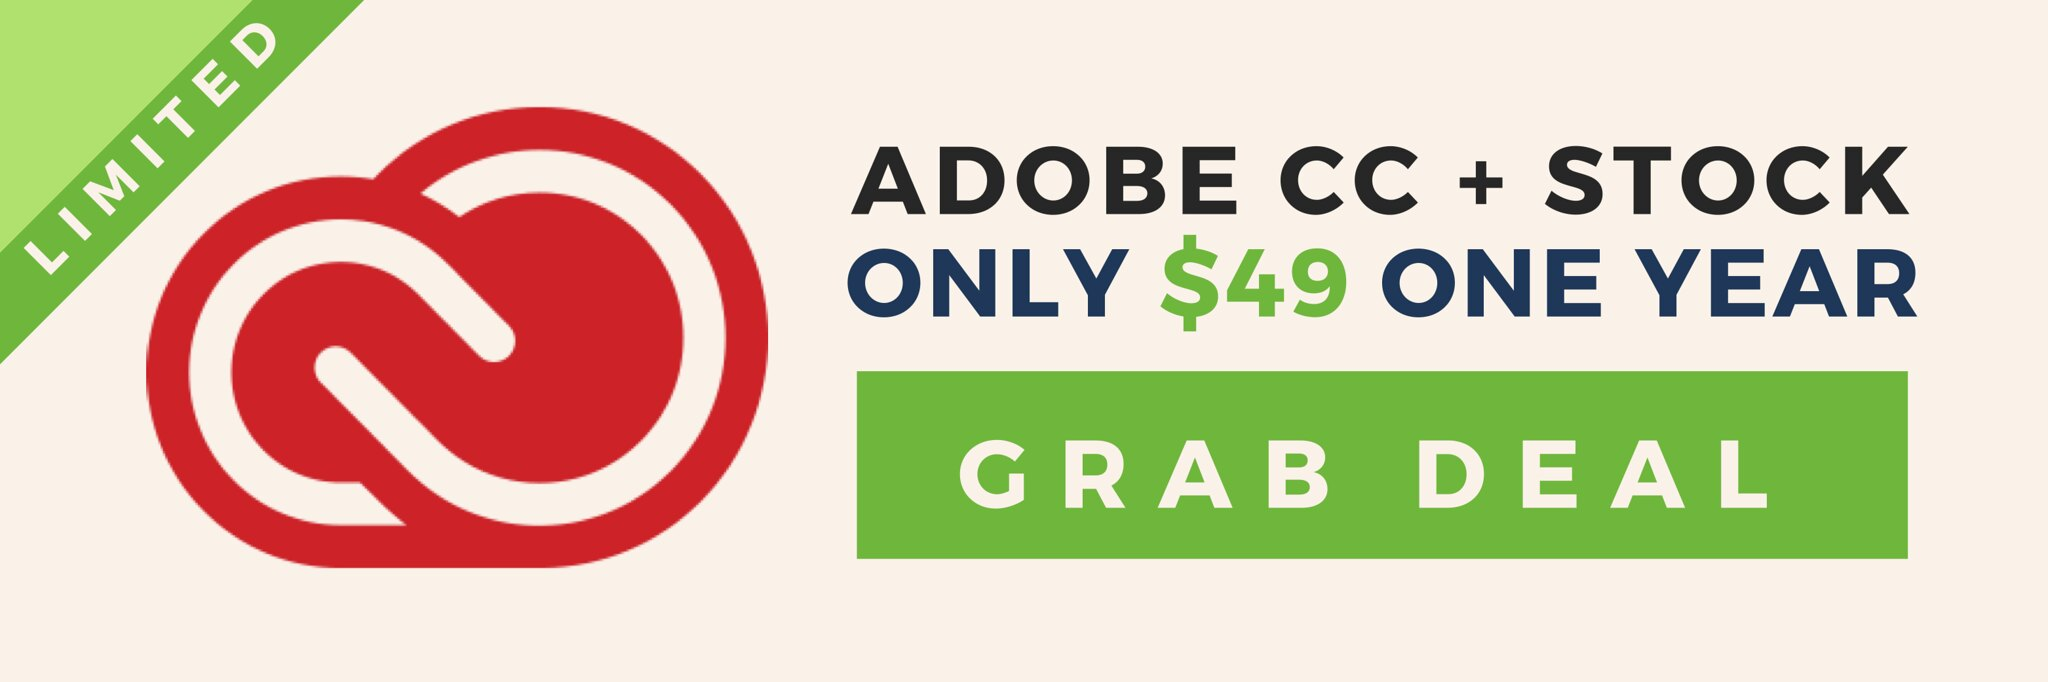 Adobe CC + Stock Deals